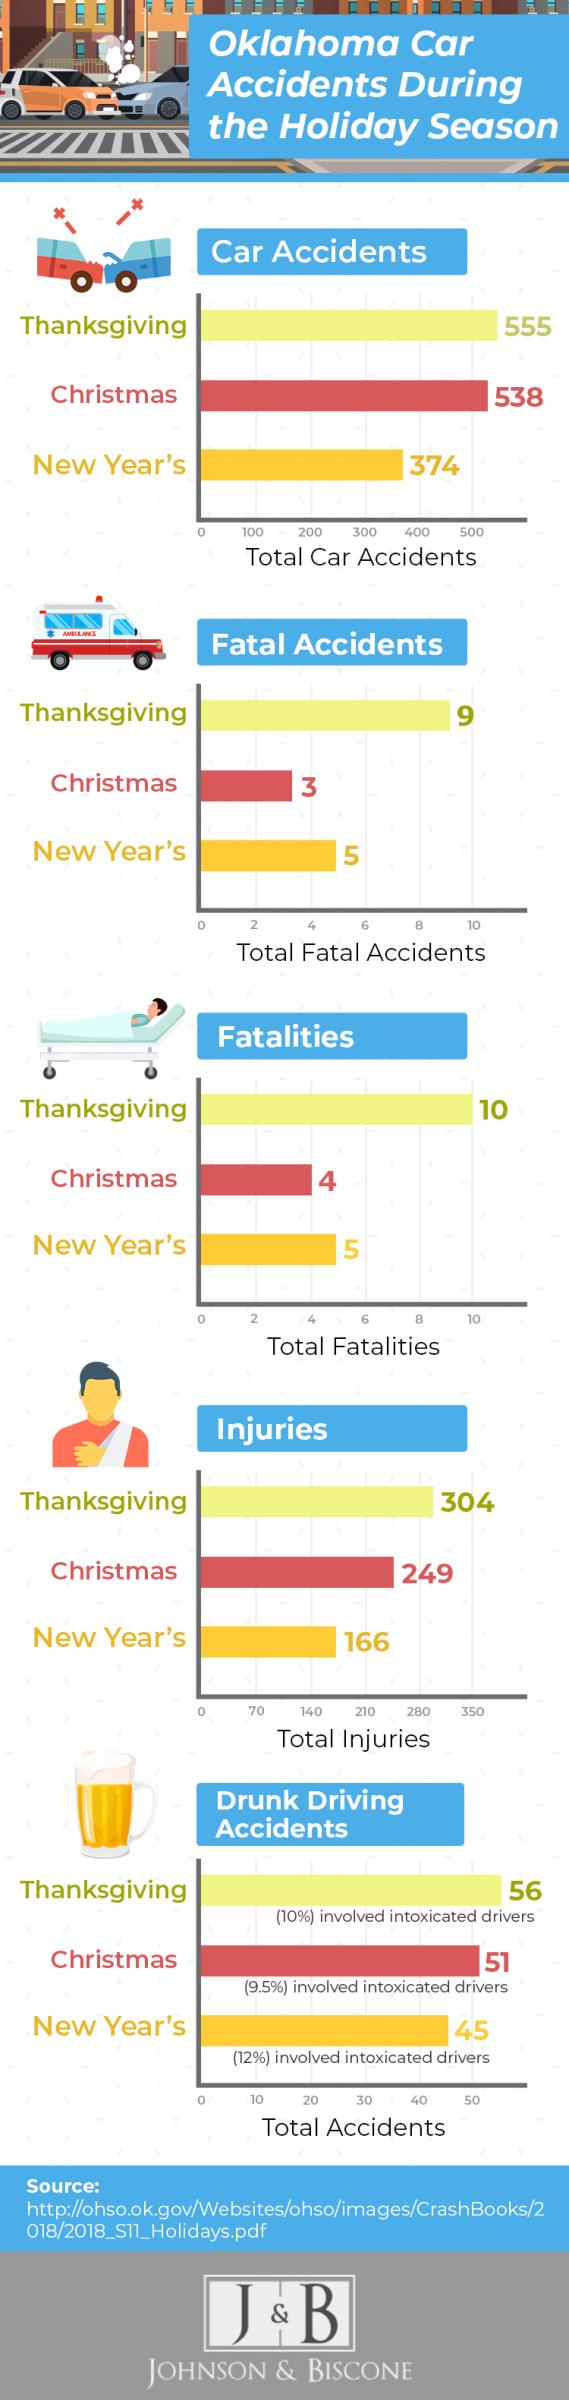 infographic highighting the number of car accidents in Oklahoma over the holidays